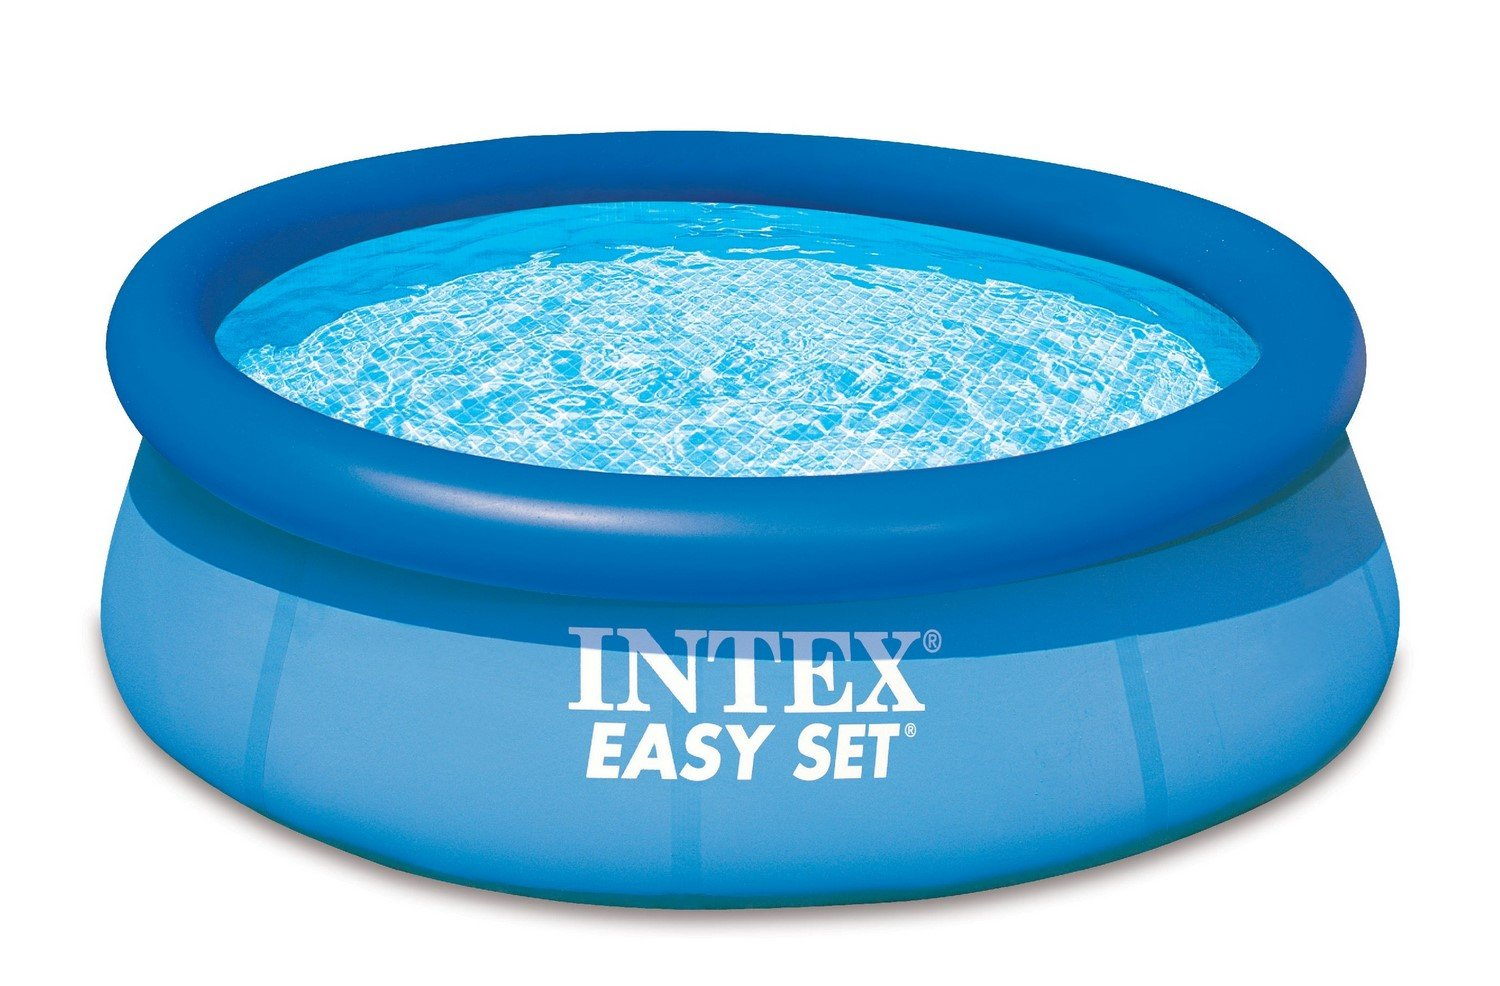 Intex easy set pool without filter blue 8 39 x 30 ebay for Piscine gonflable intex easy set